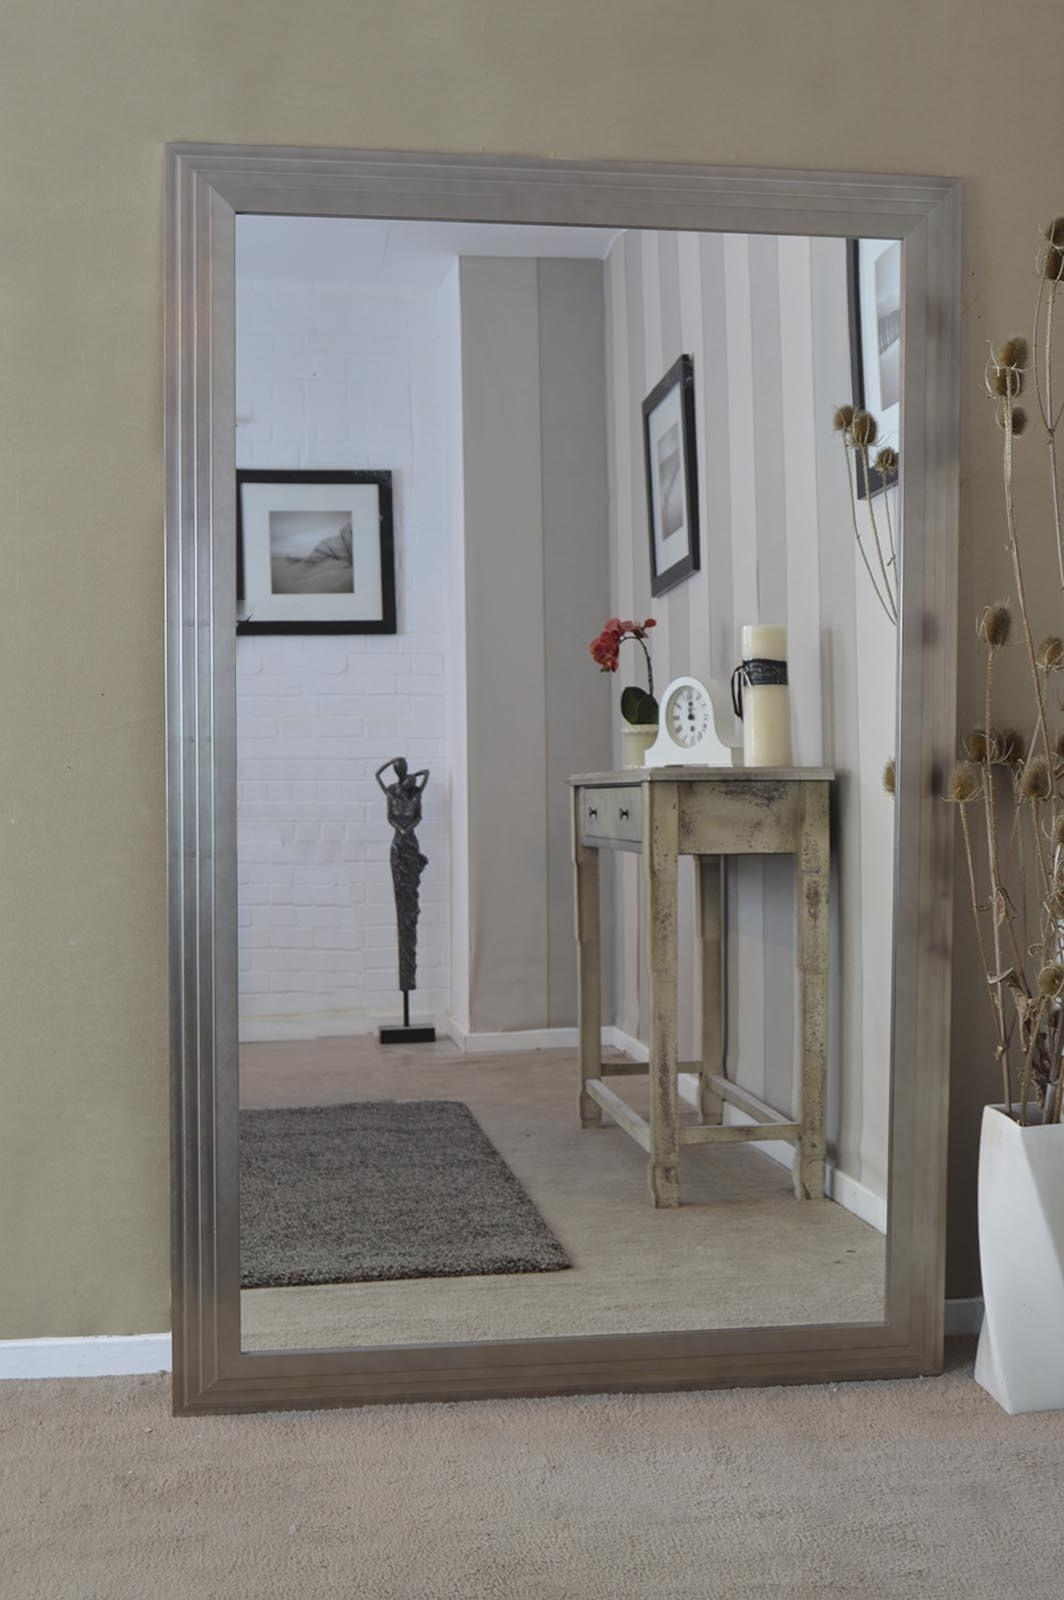 Shabby Chic Floor Mirror 115 Awesome Exterior With Bedroom Shabby Intended For Mirror Shabby Chic (Image 14 of 20)